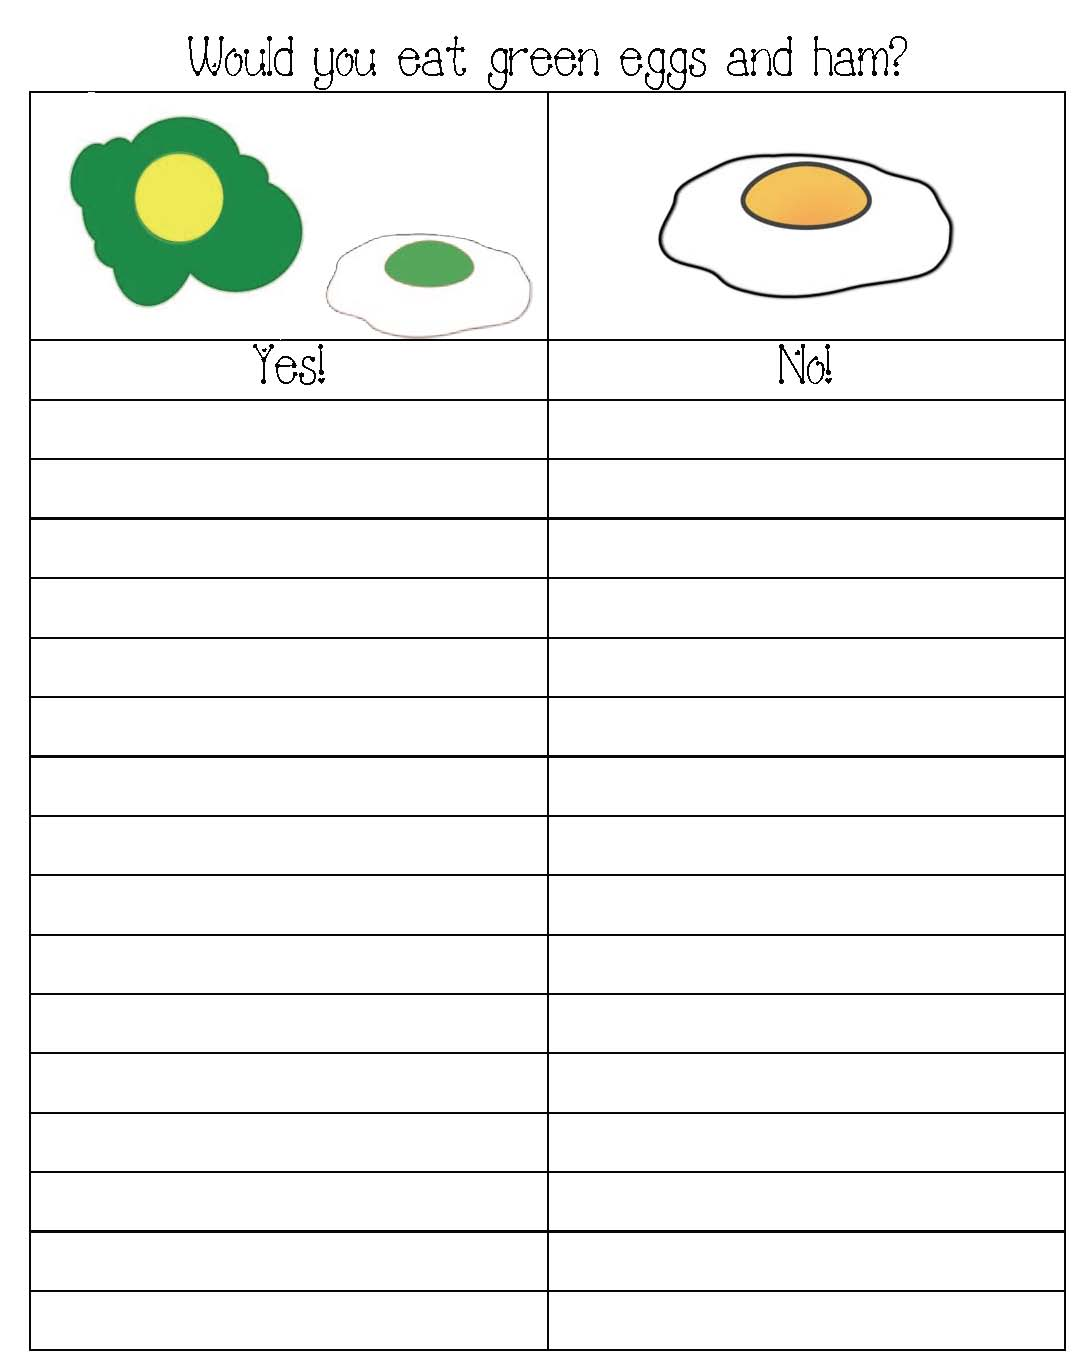 green eggs and ham graph, seuss activities, shape activities, shape games, contraction activities, emergent readers, color activities, color words, color games, green eggs and ham activities, green eggs and ham games, common core seuss, seuss writing prompts, march writing prompts, seuss bulletin boards, green eggs and ham bulletin boards,  do you like green eggs graph, telling time games, telling time to the hour activities, telling digital time activities, analog time activities, color word activities, green eggs and ham games,